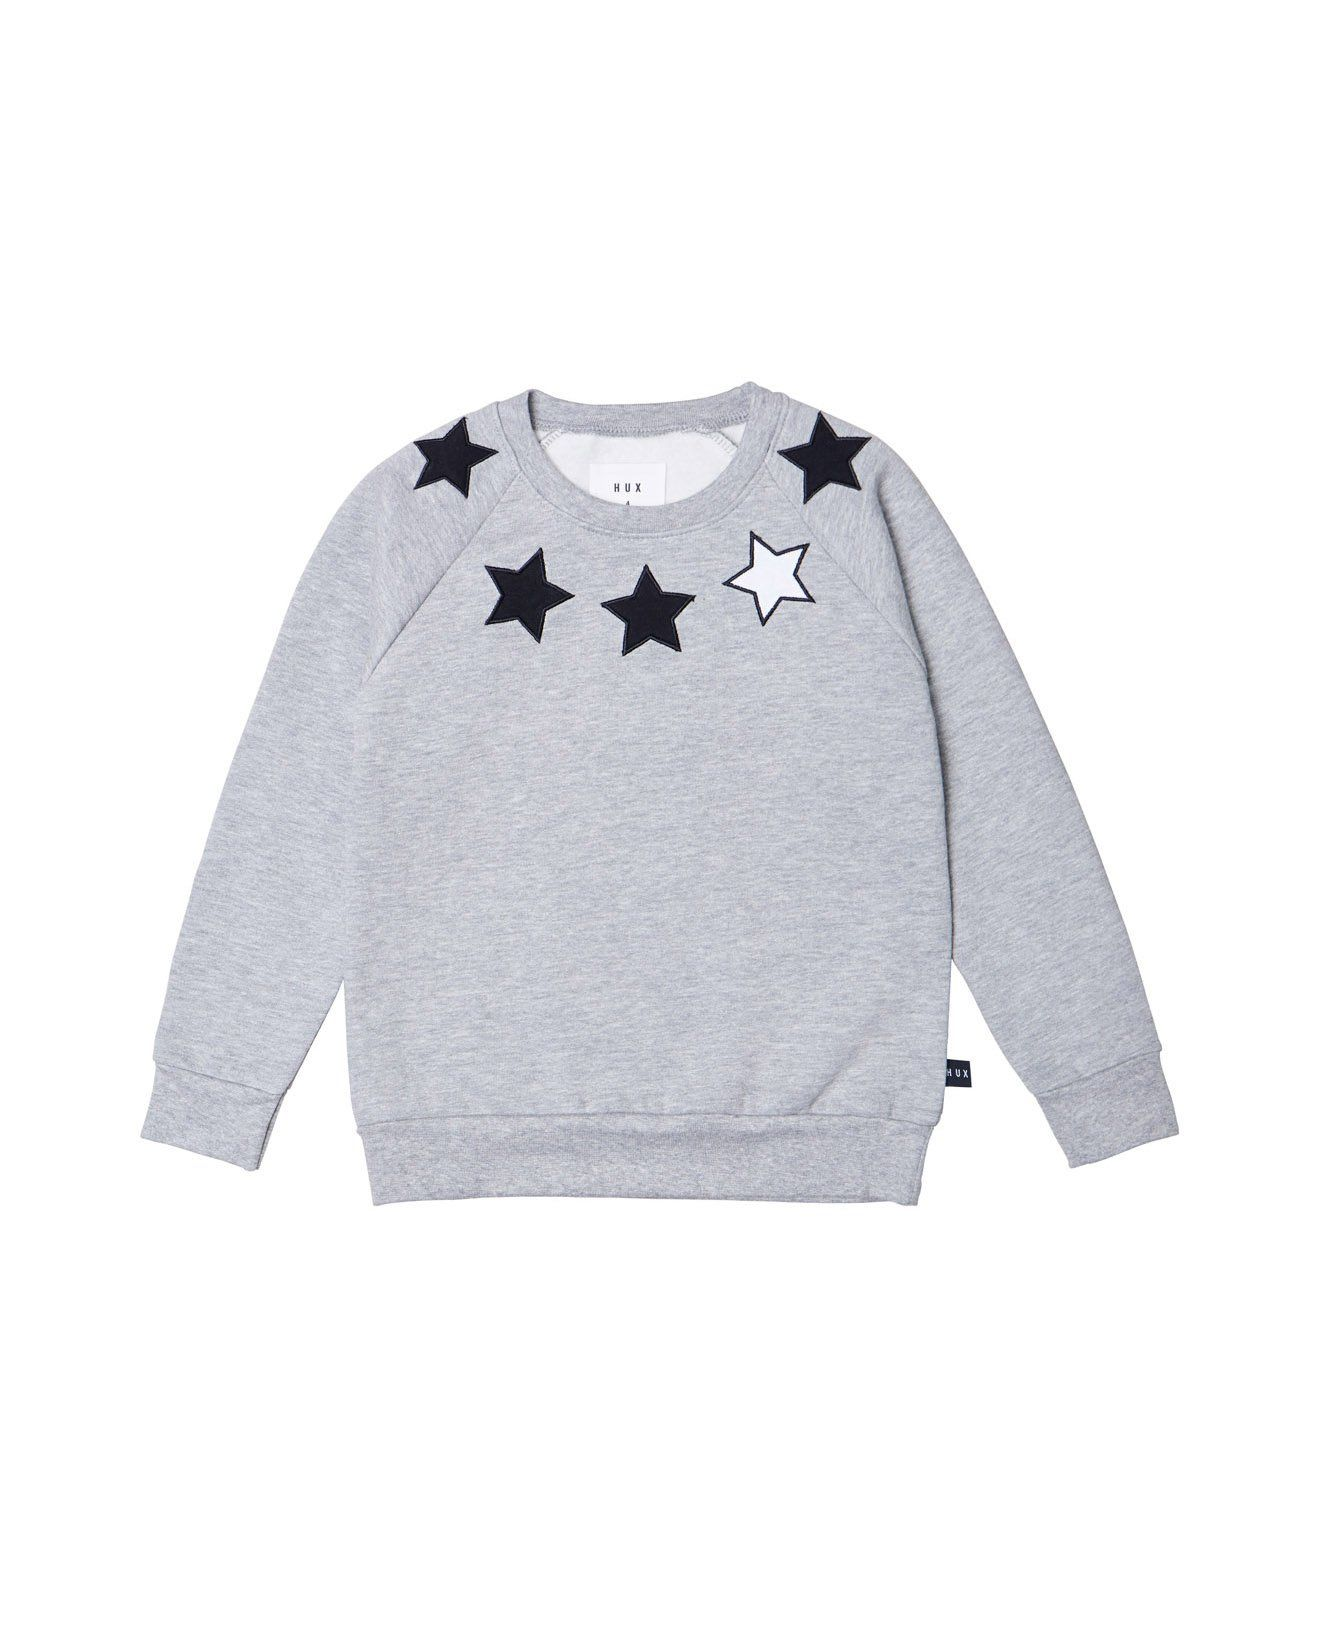 Huxbaby Star Sweatshirt Grey Marle Sweatshirts, Grey